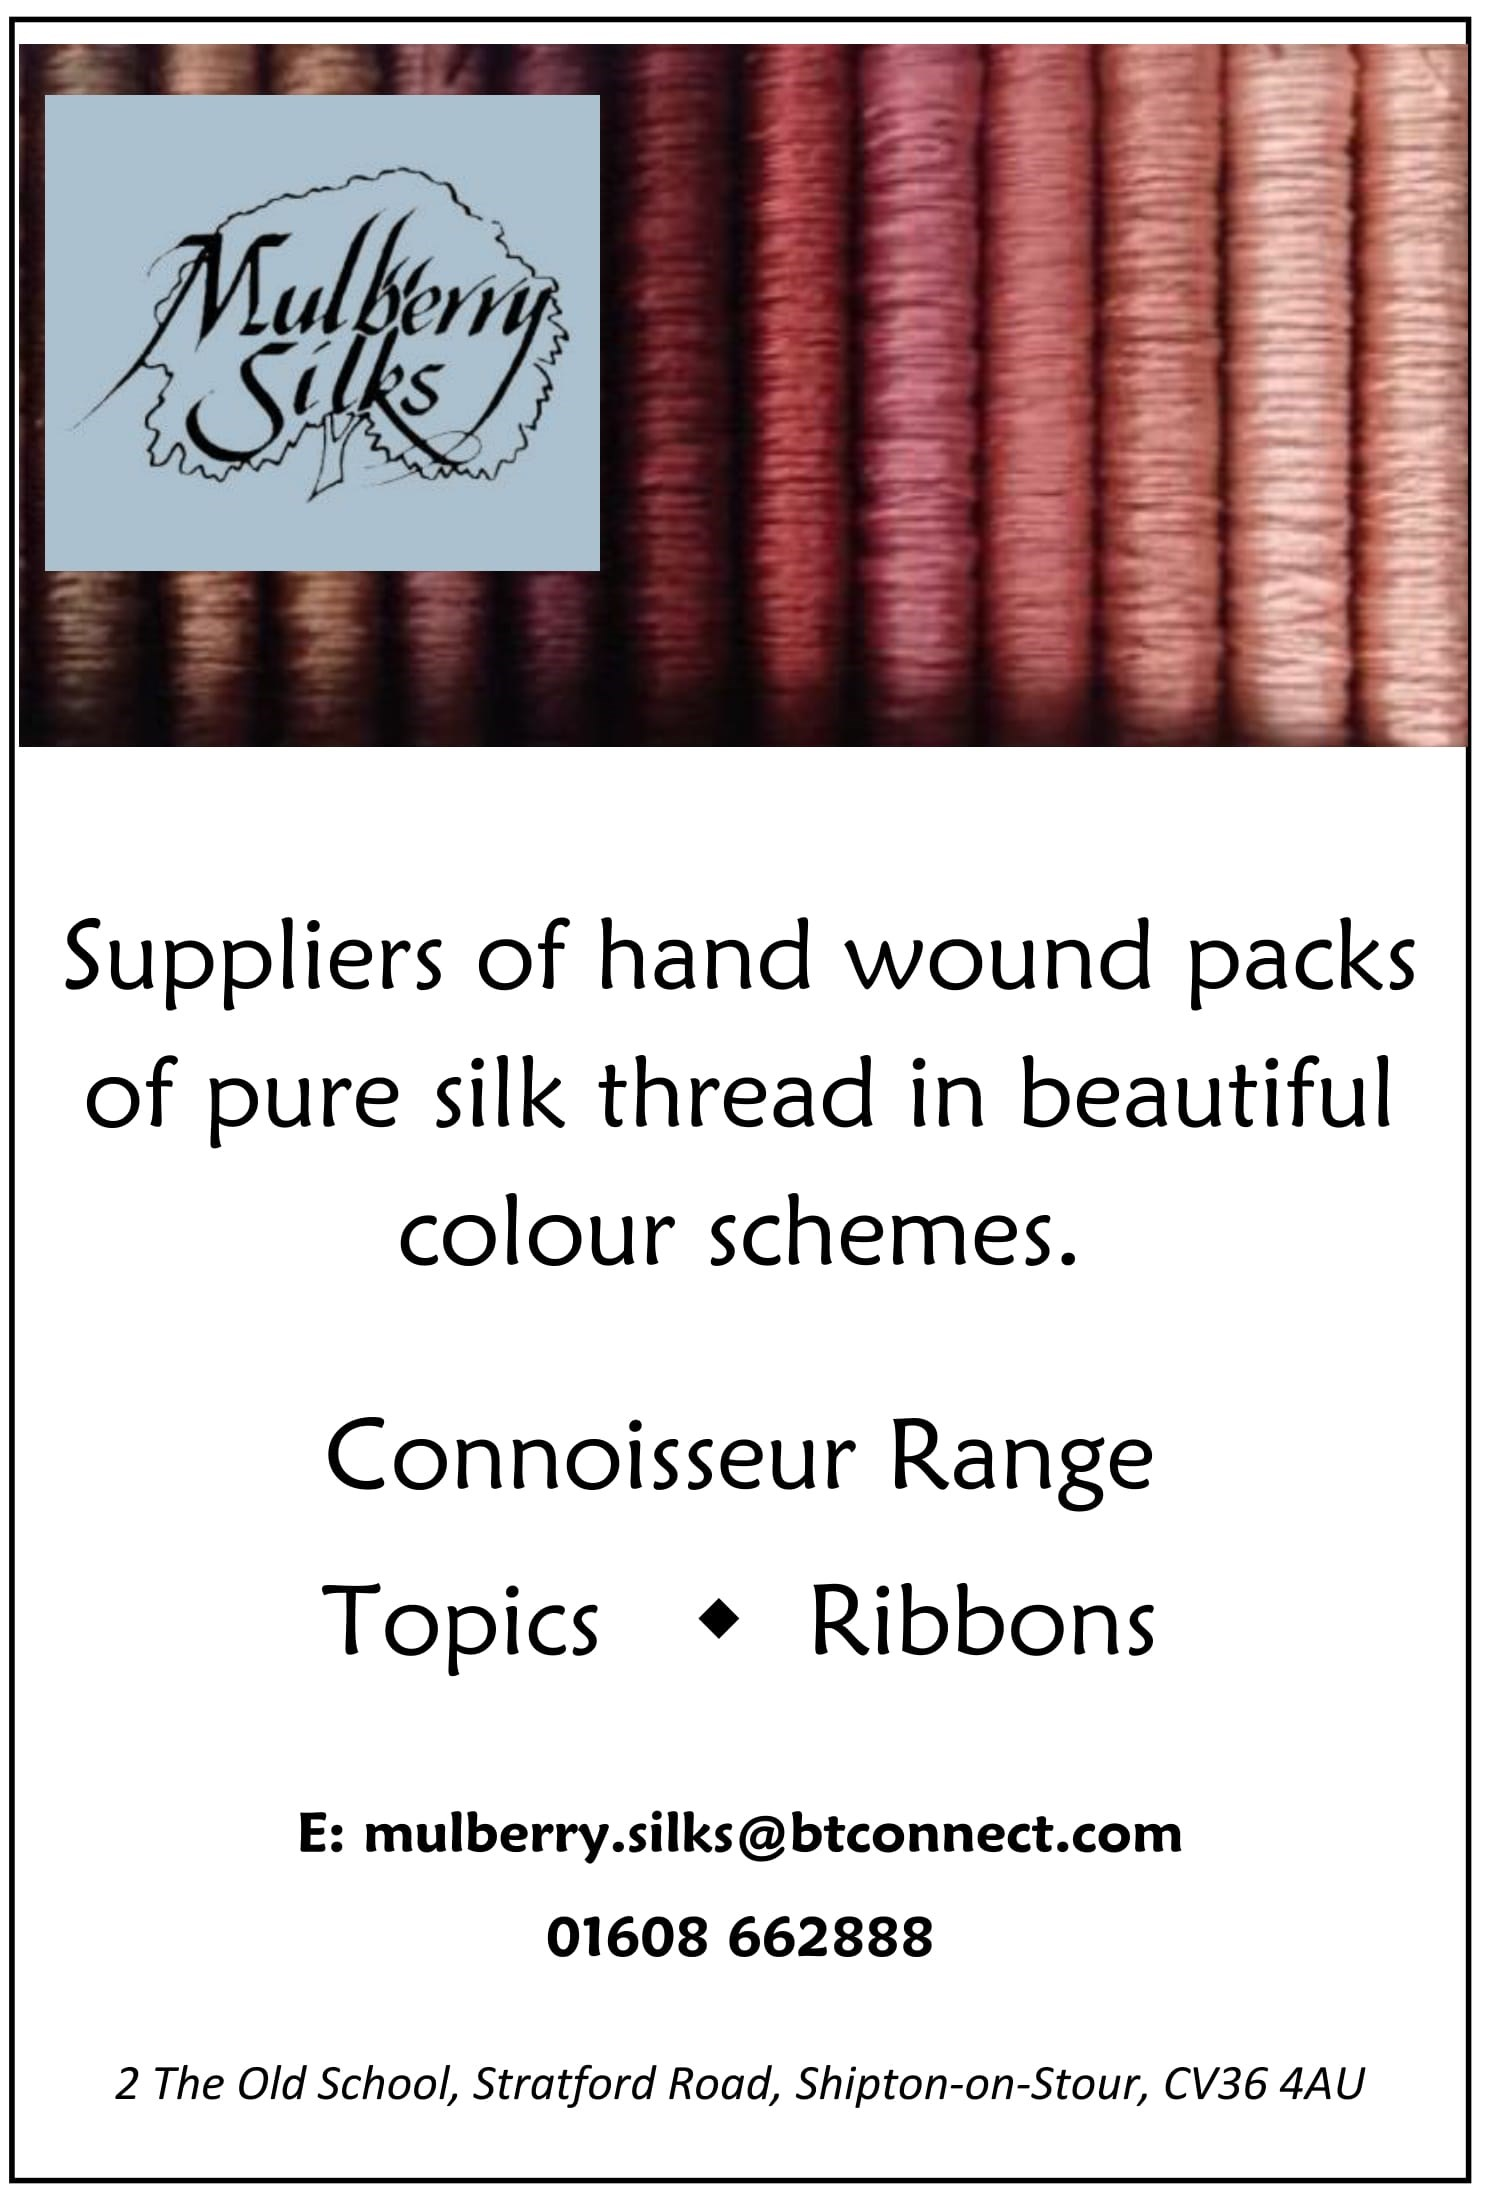 Mulberry Silks